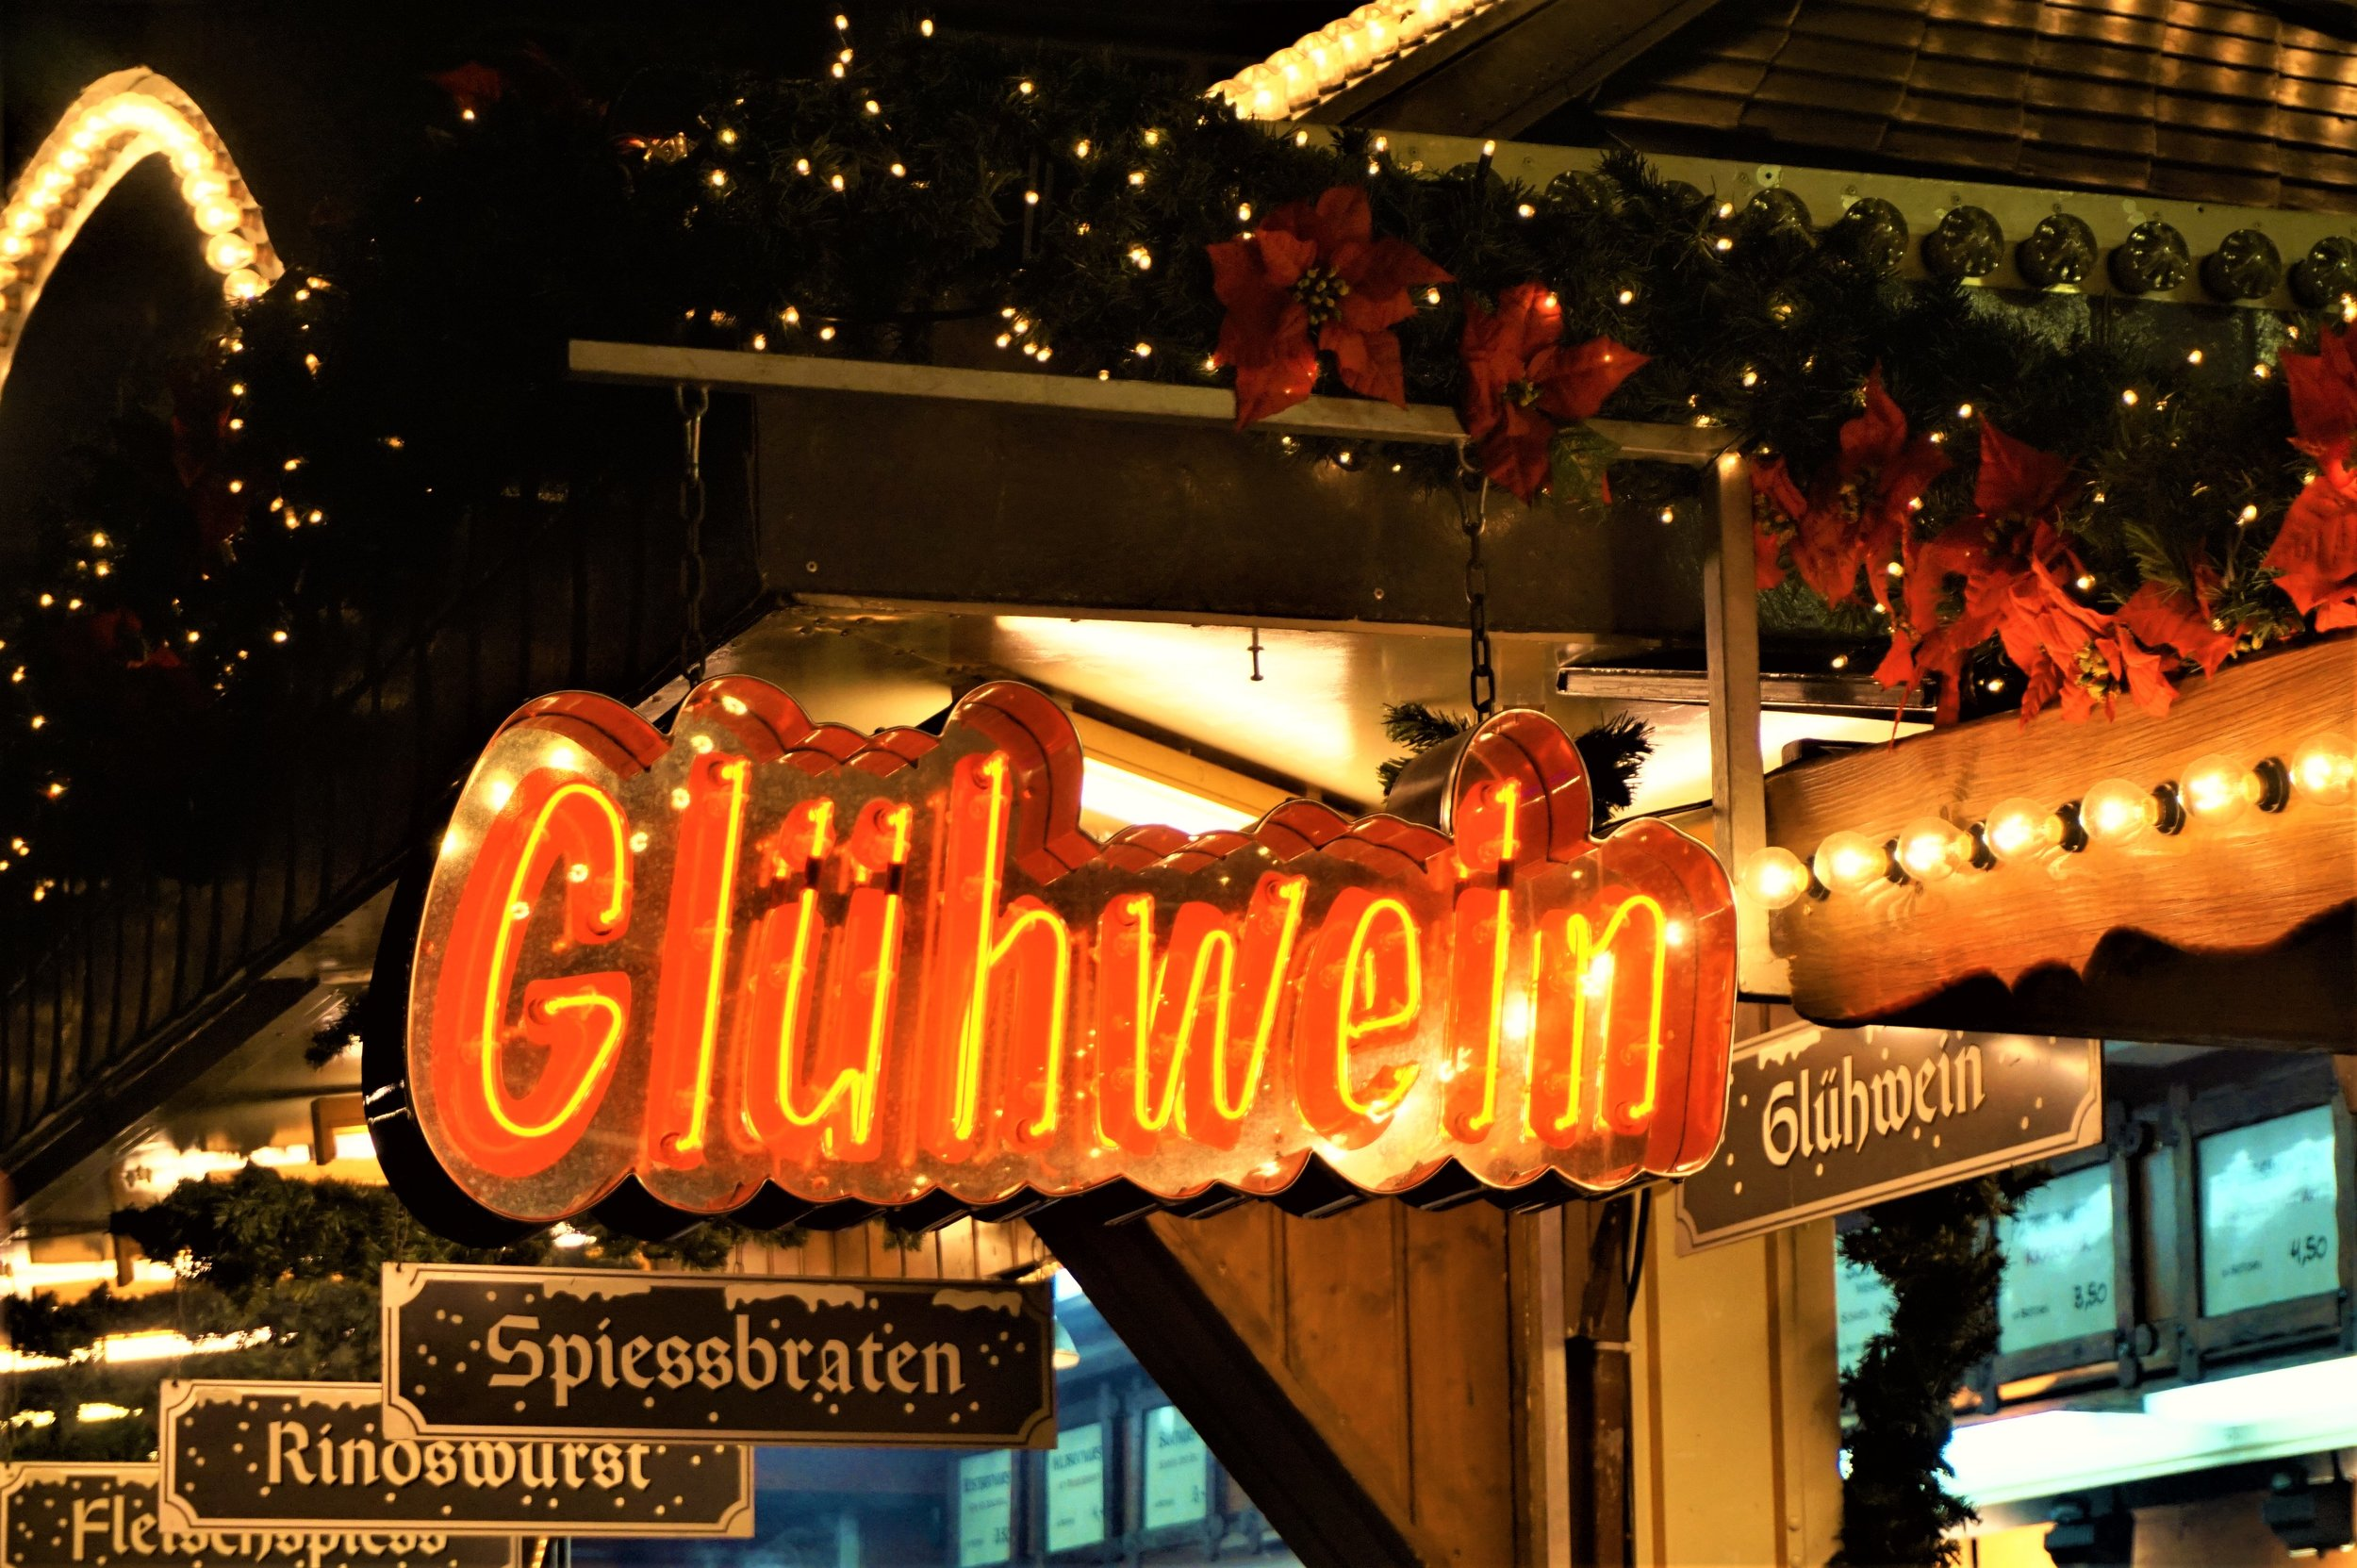 Germany-Frankfurt-Christmas-markets4.jpg